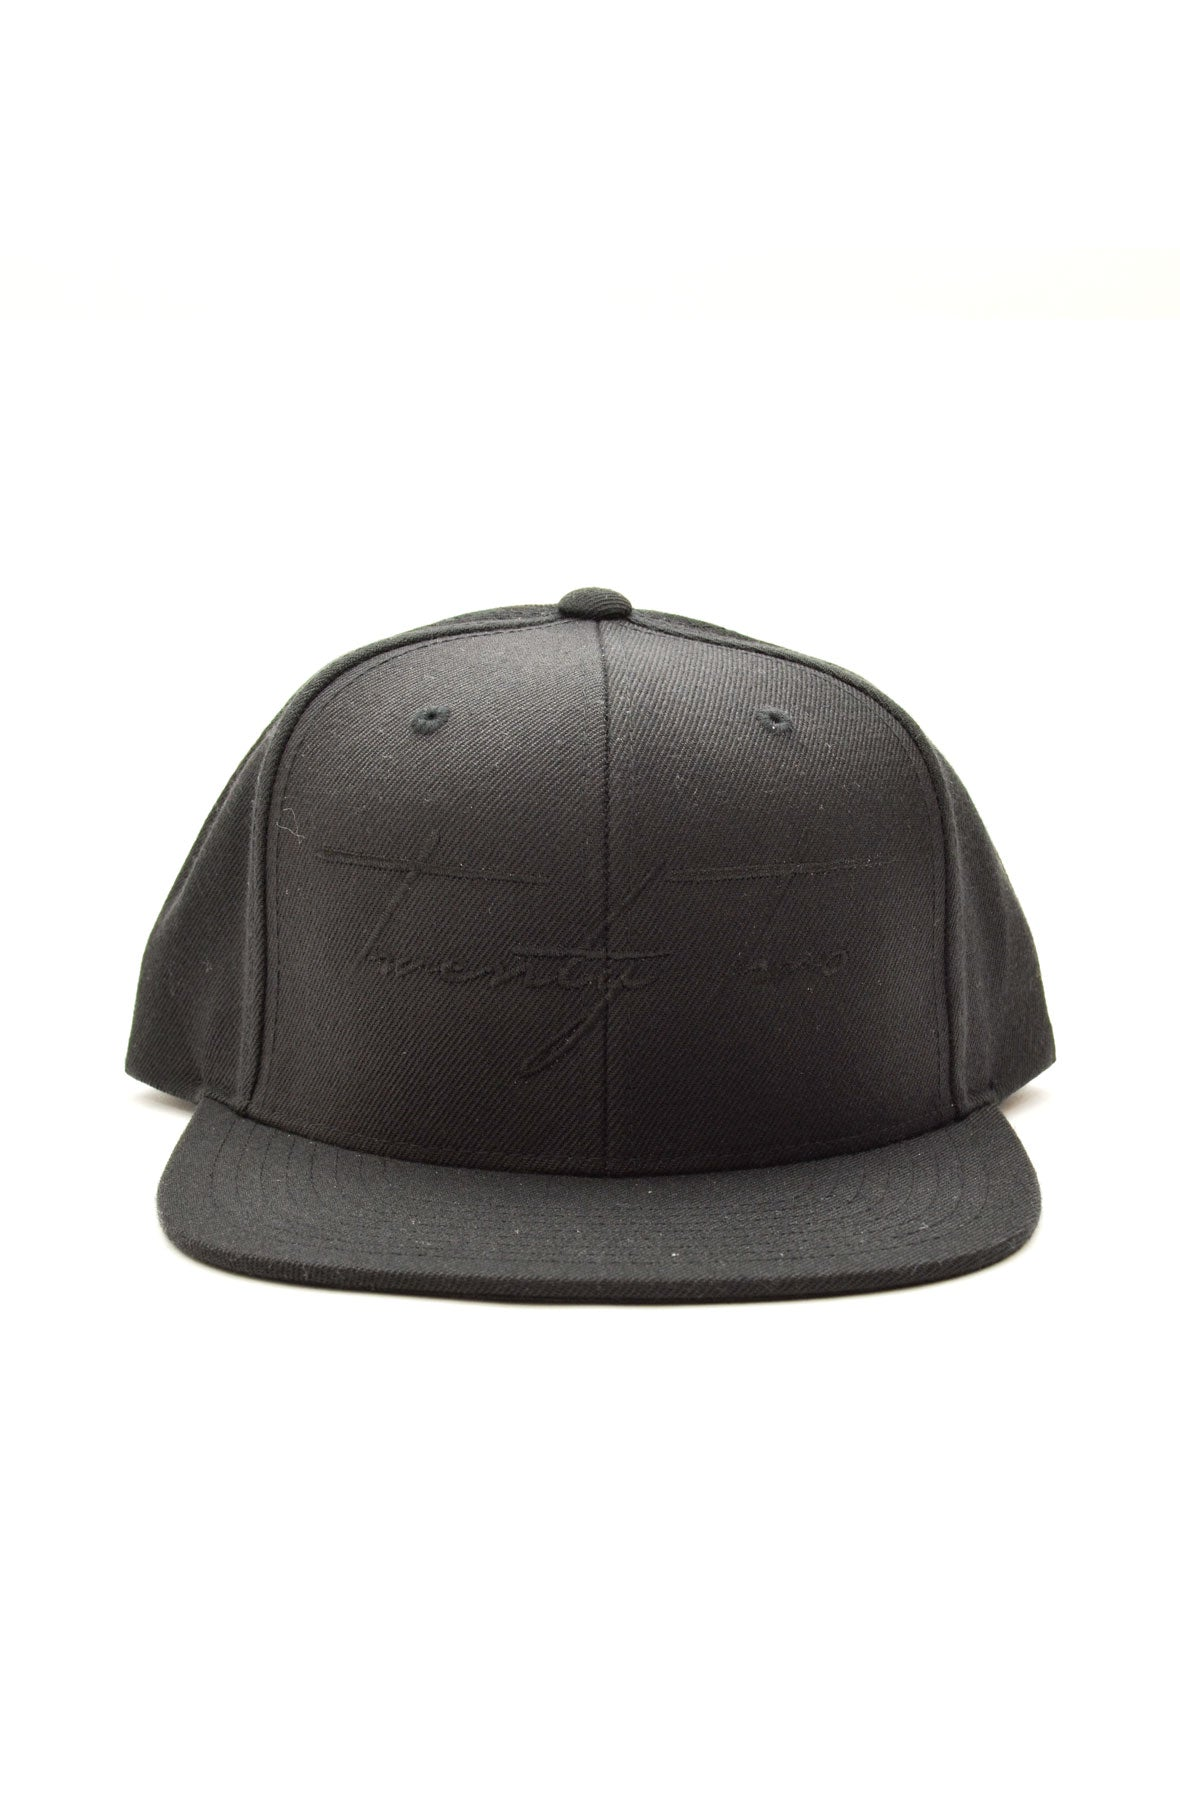 Signature Snapback in Black/Black